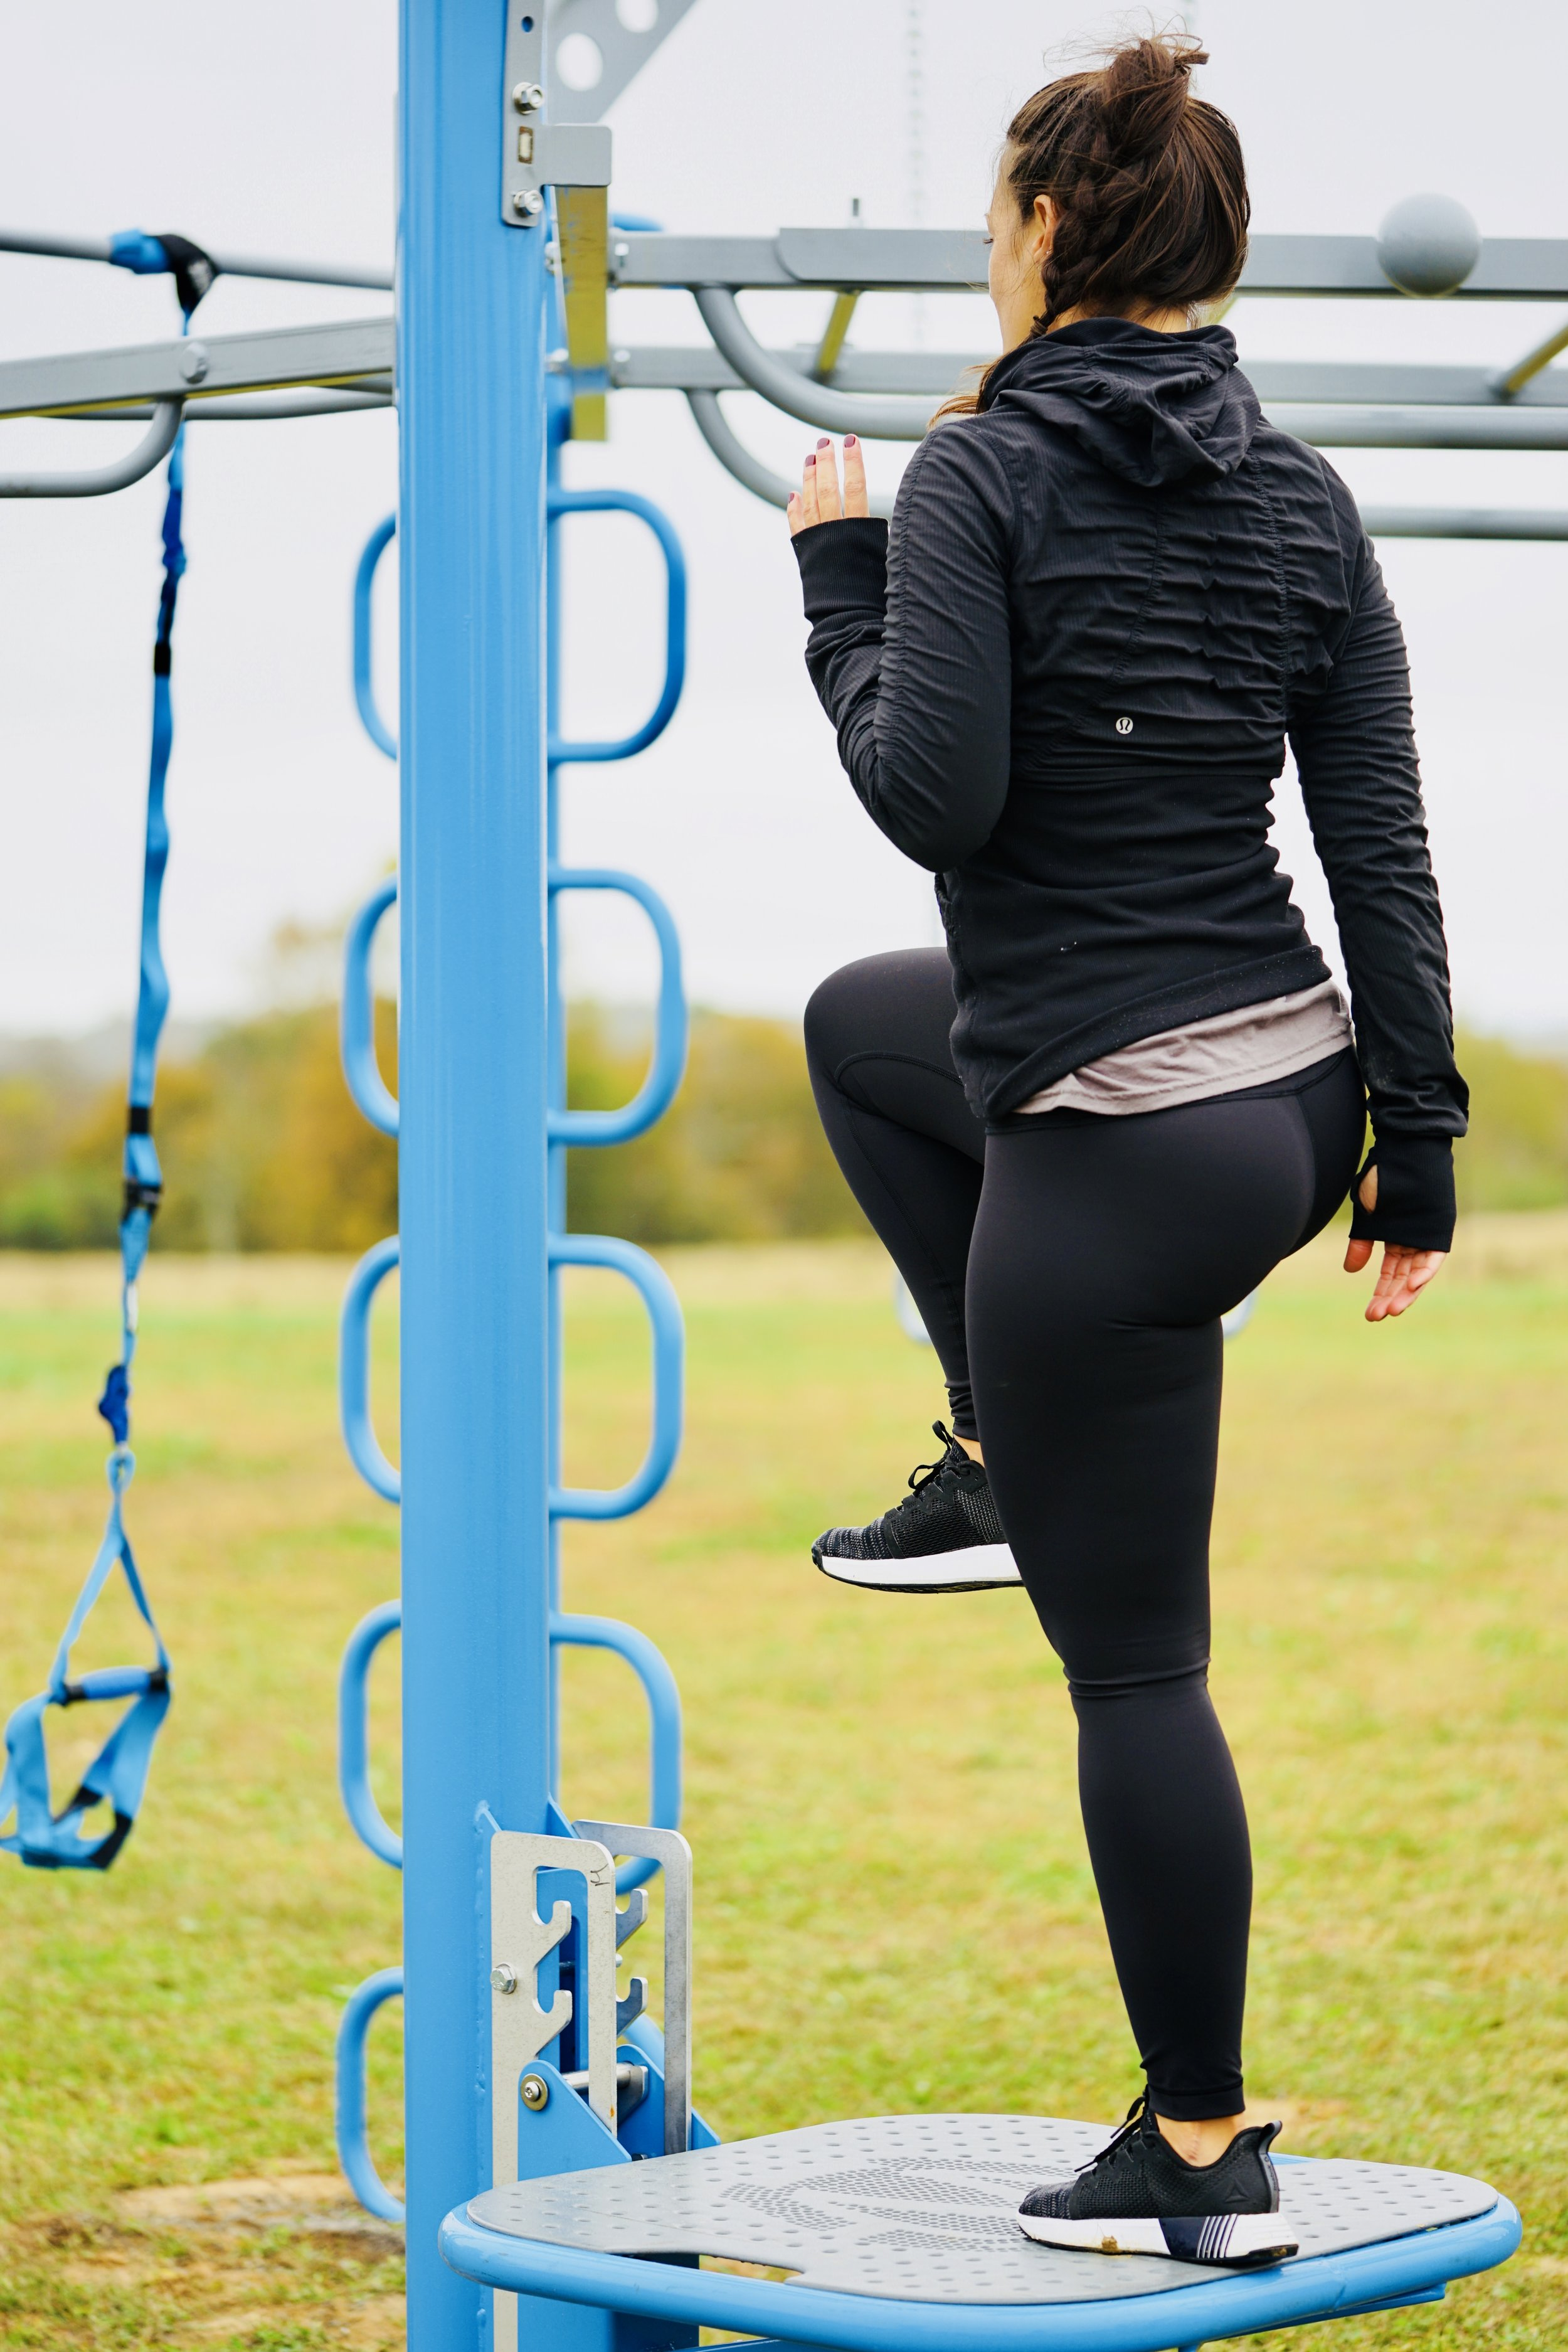 Step-up exercise outdoor fitness